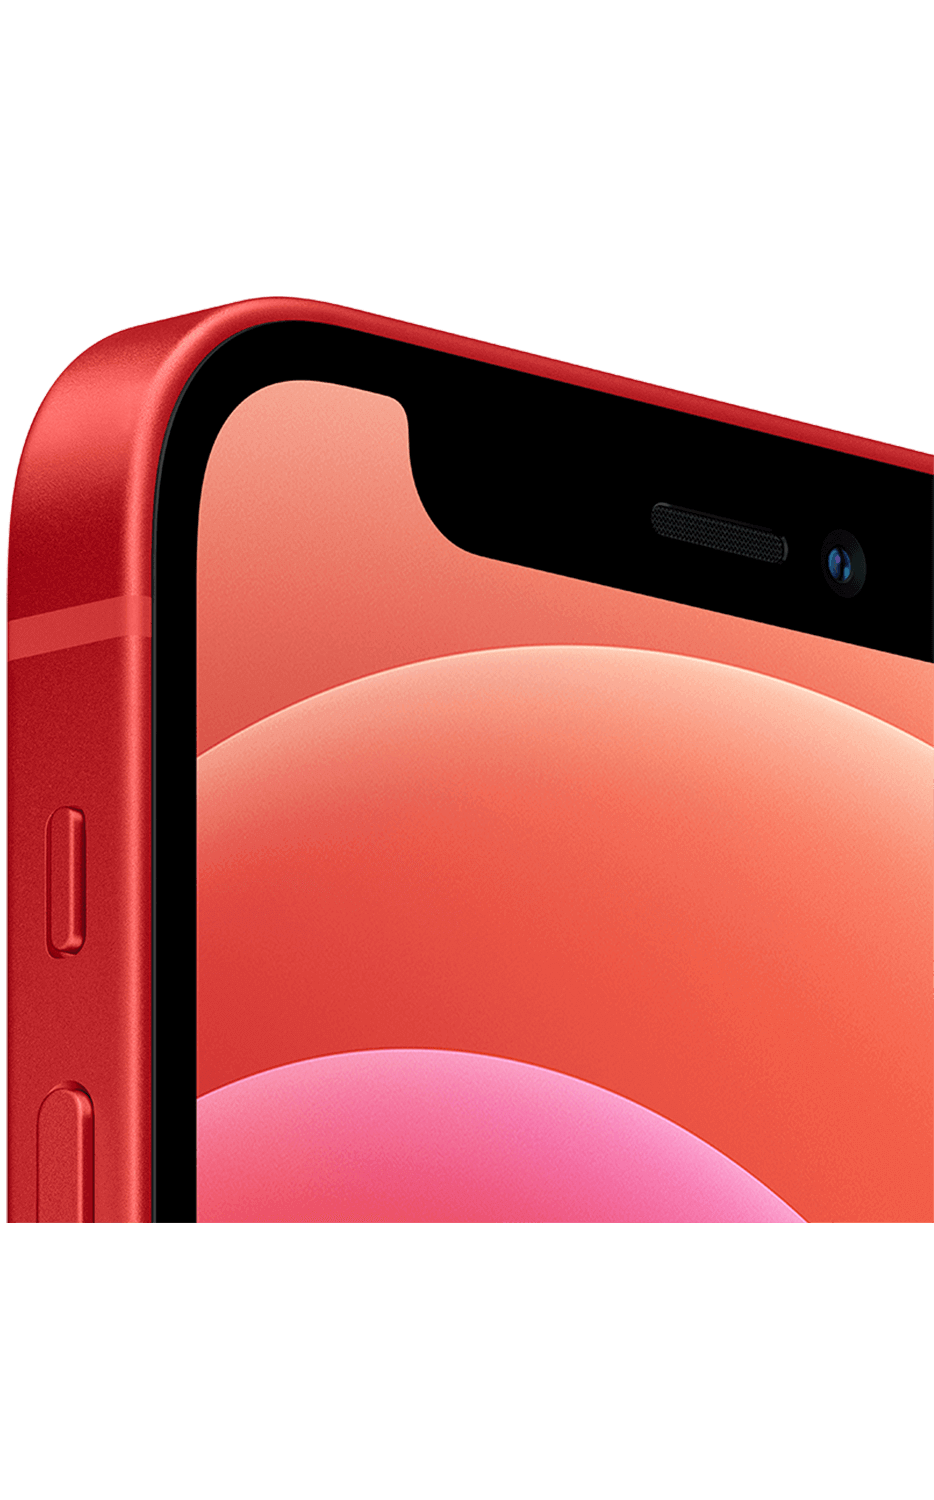 Right View iPhone 12 mini (PRODUCT)RED